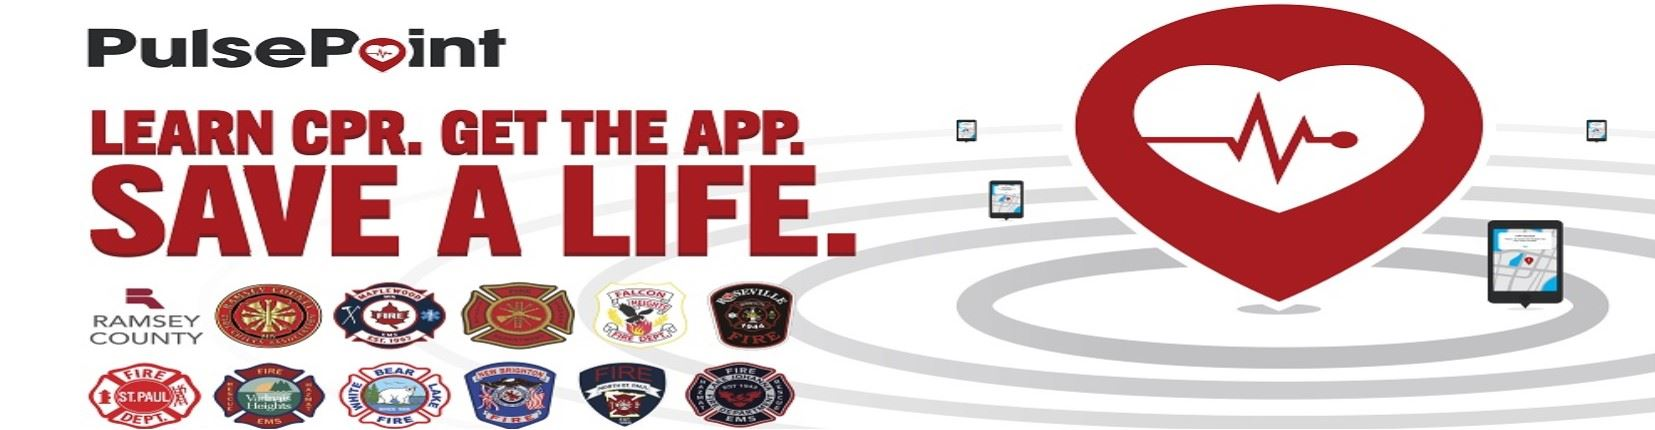 Save a Life - PulsePoint